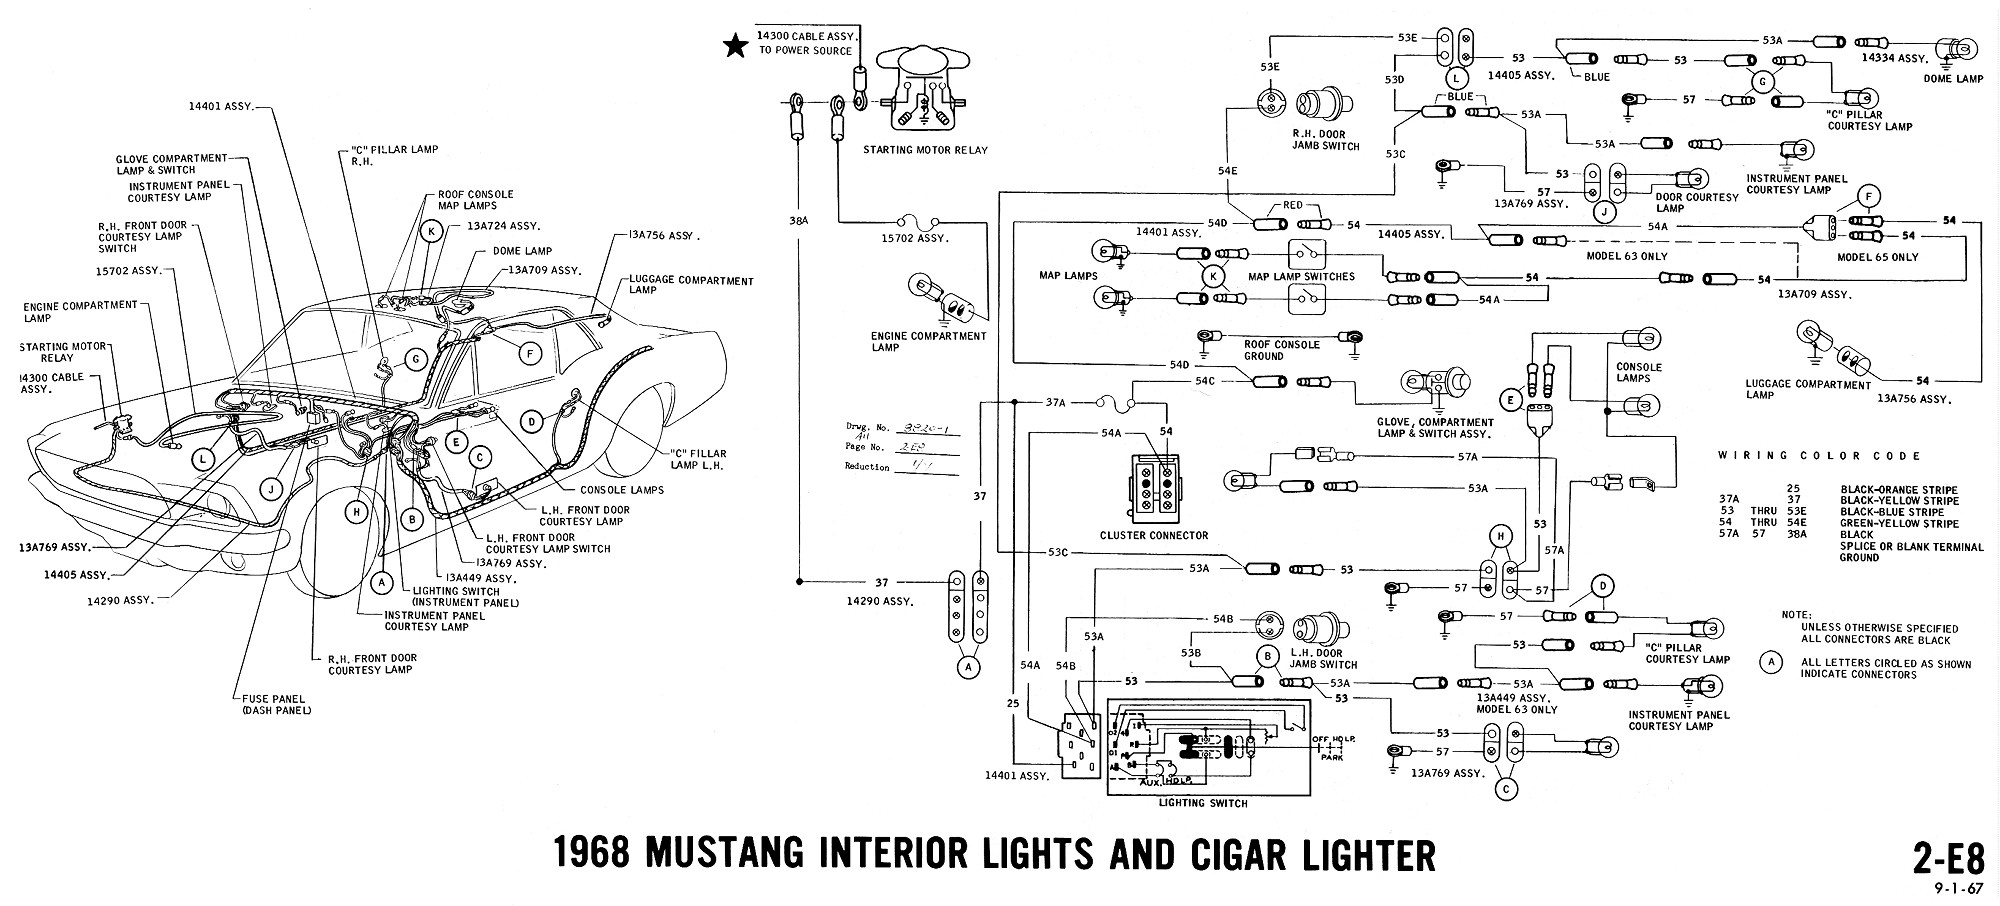 1980 Camaro Headlight Wiring Diagram Smart Diagrams 1979 Schematic 1968 Mustang And Vacuum Schematics 1972 1970